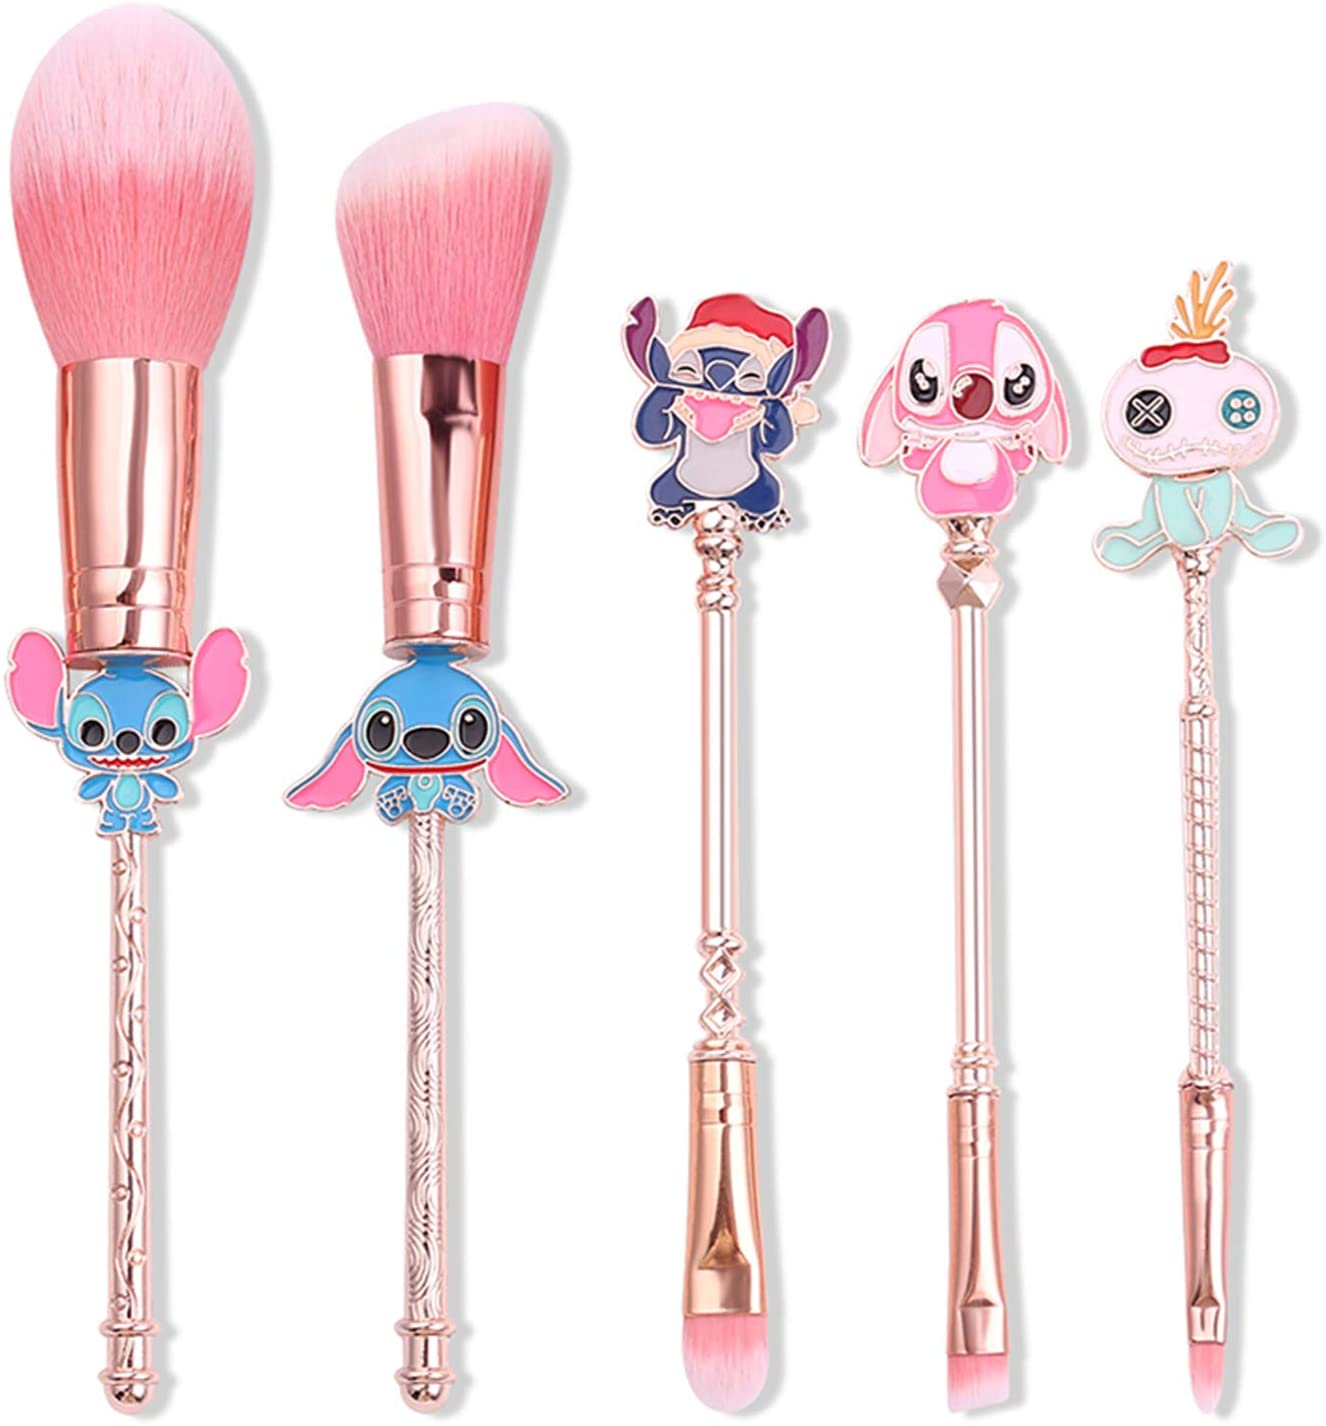 Ohana Makeup Brush set